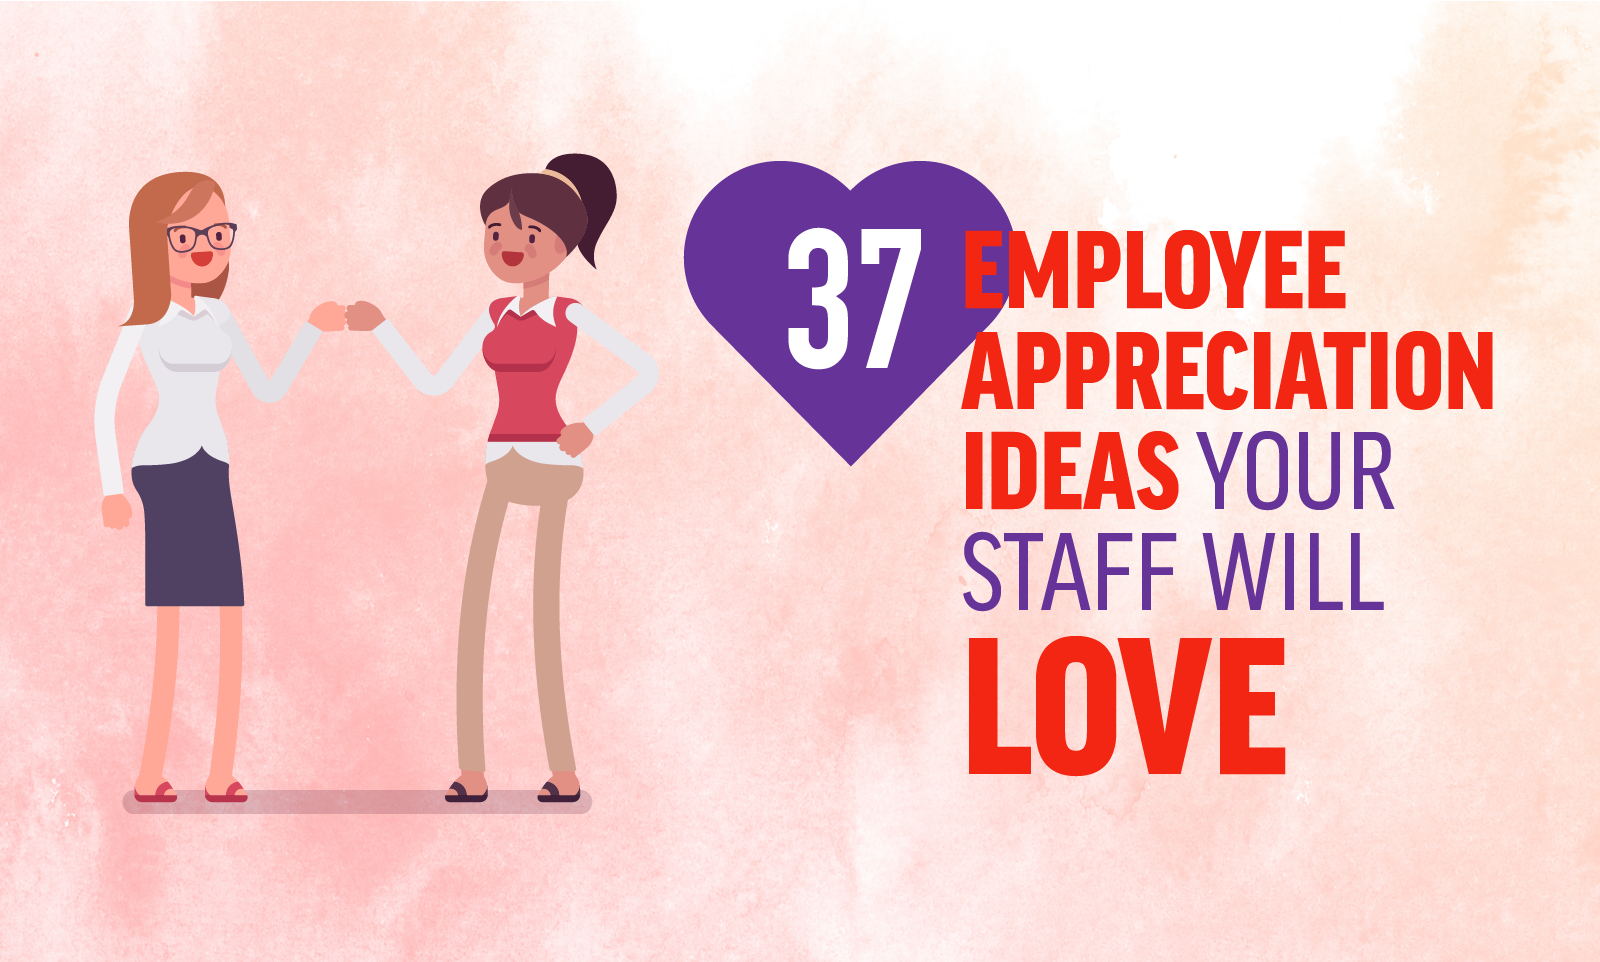 37 Employee Appreciation Ideas Your Staff Will Love When I